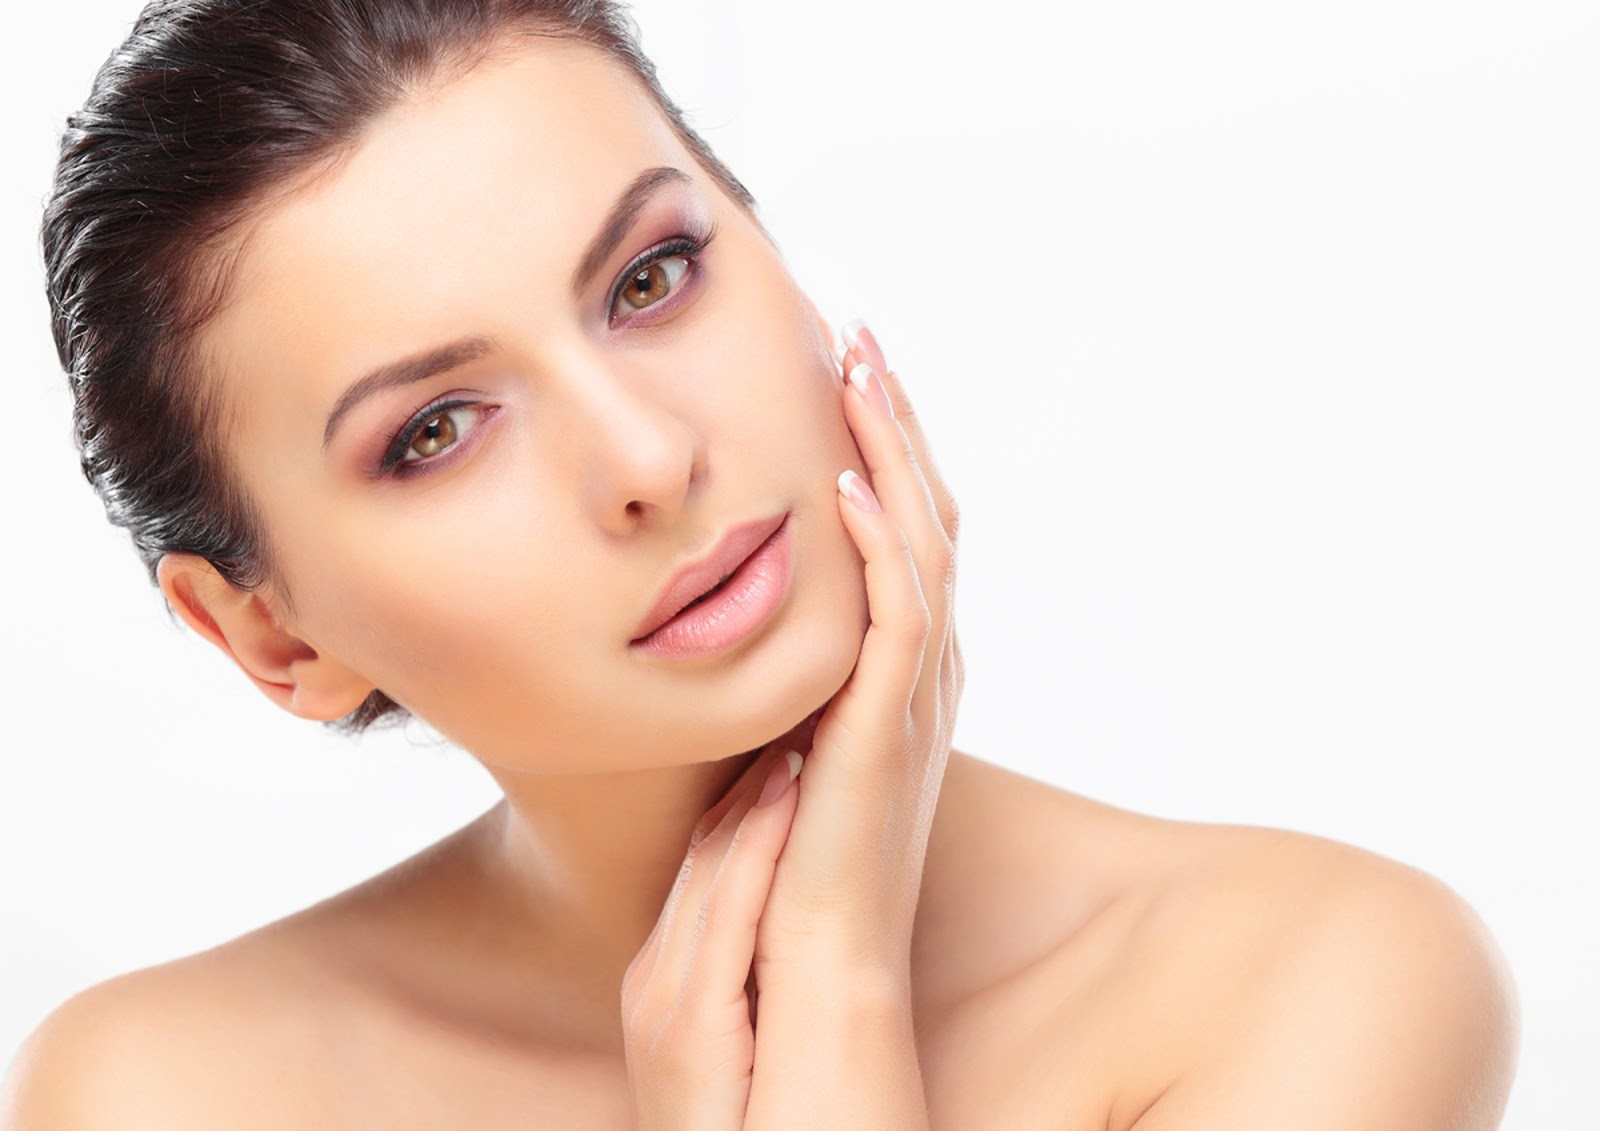 top 10 natural beauty tips - Top 10 Best Natural Beauty Tips of All Time, News, Top 10 Beauty ...